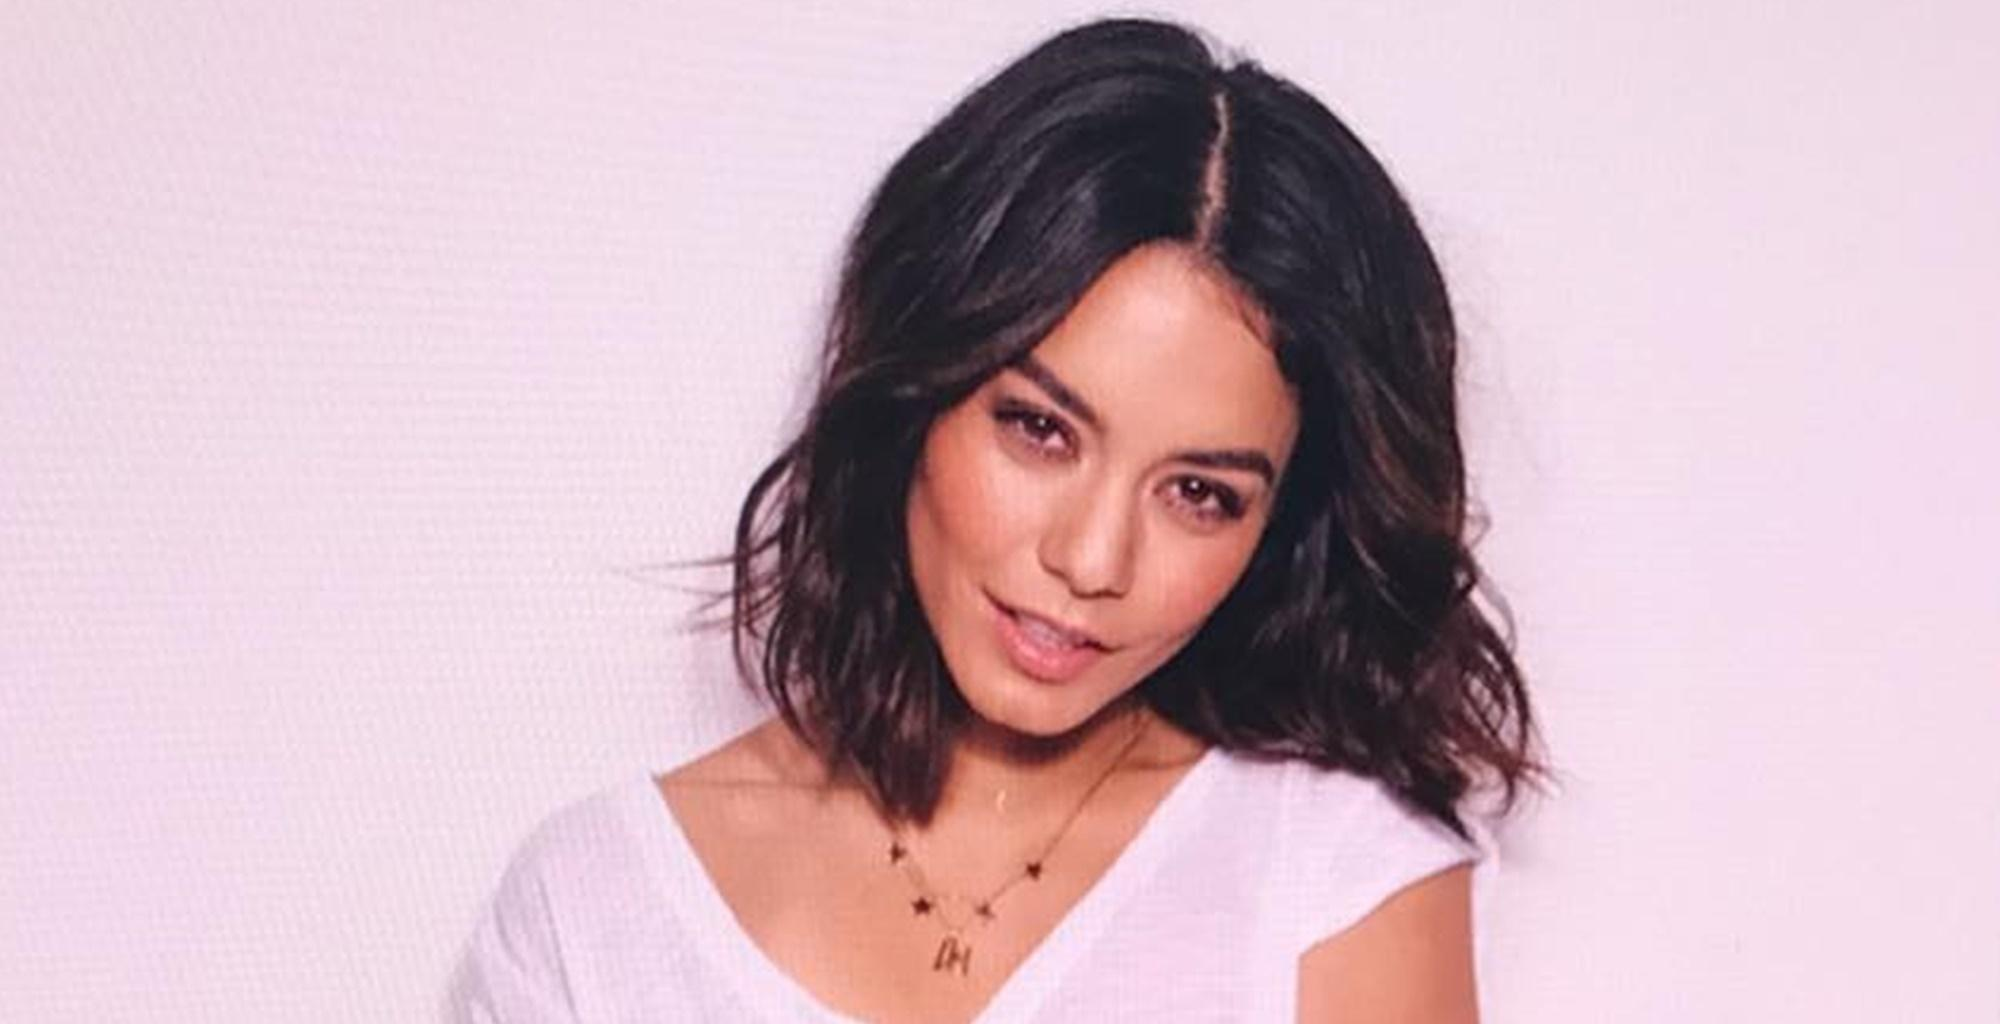 Vanessa Hudgens Shows Off Her Impressive Curves In Alluring Pictures As She Sets Sights On Catwoman Role Opposite Robert Pattinson